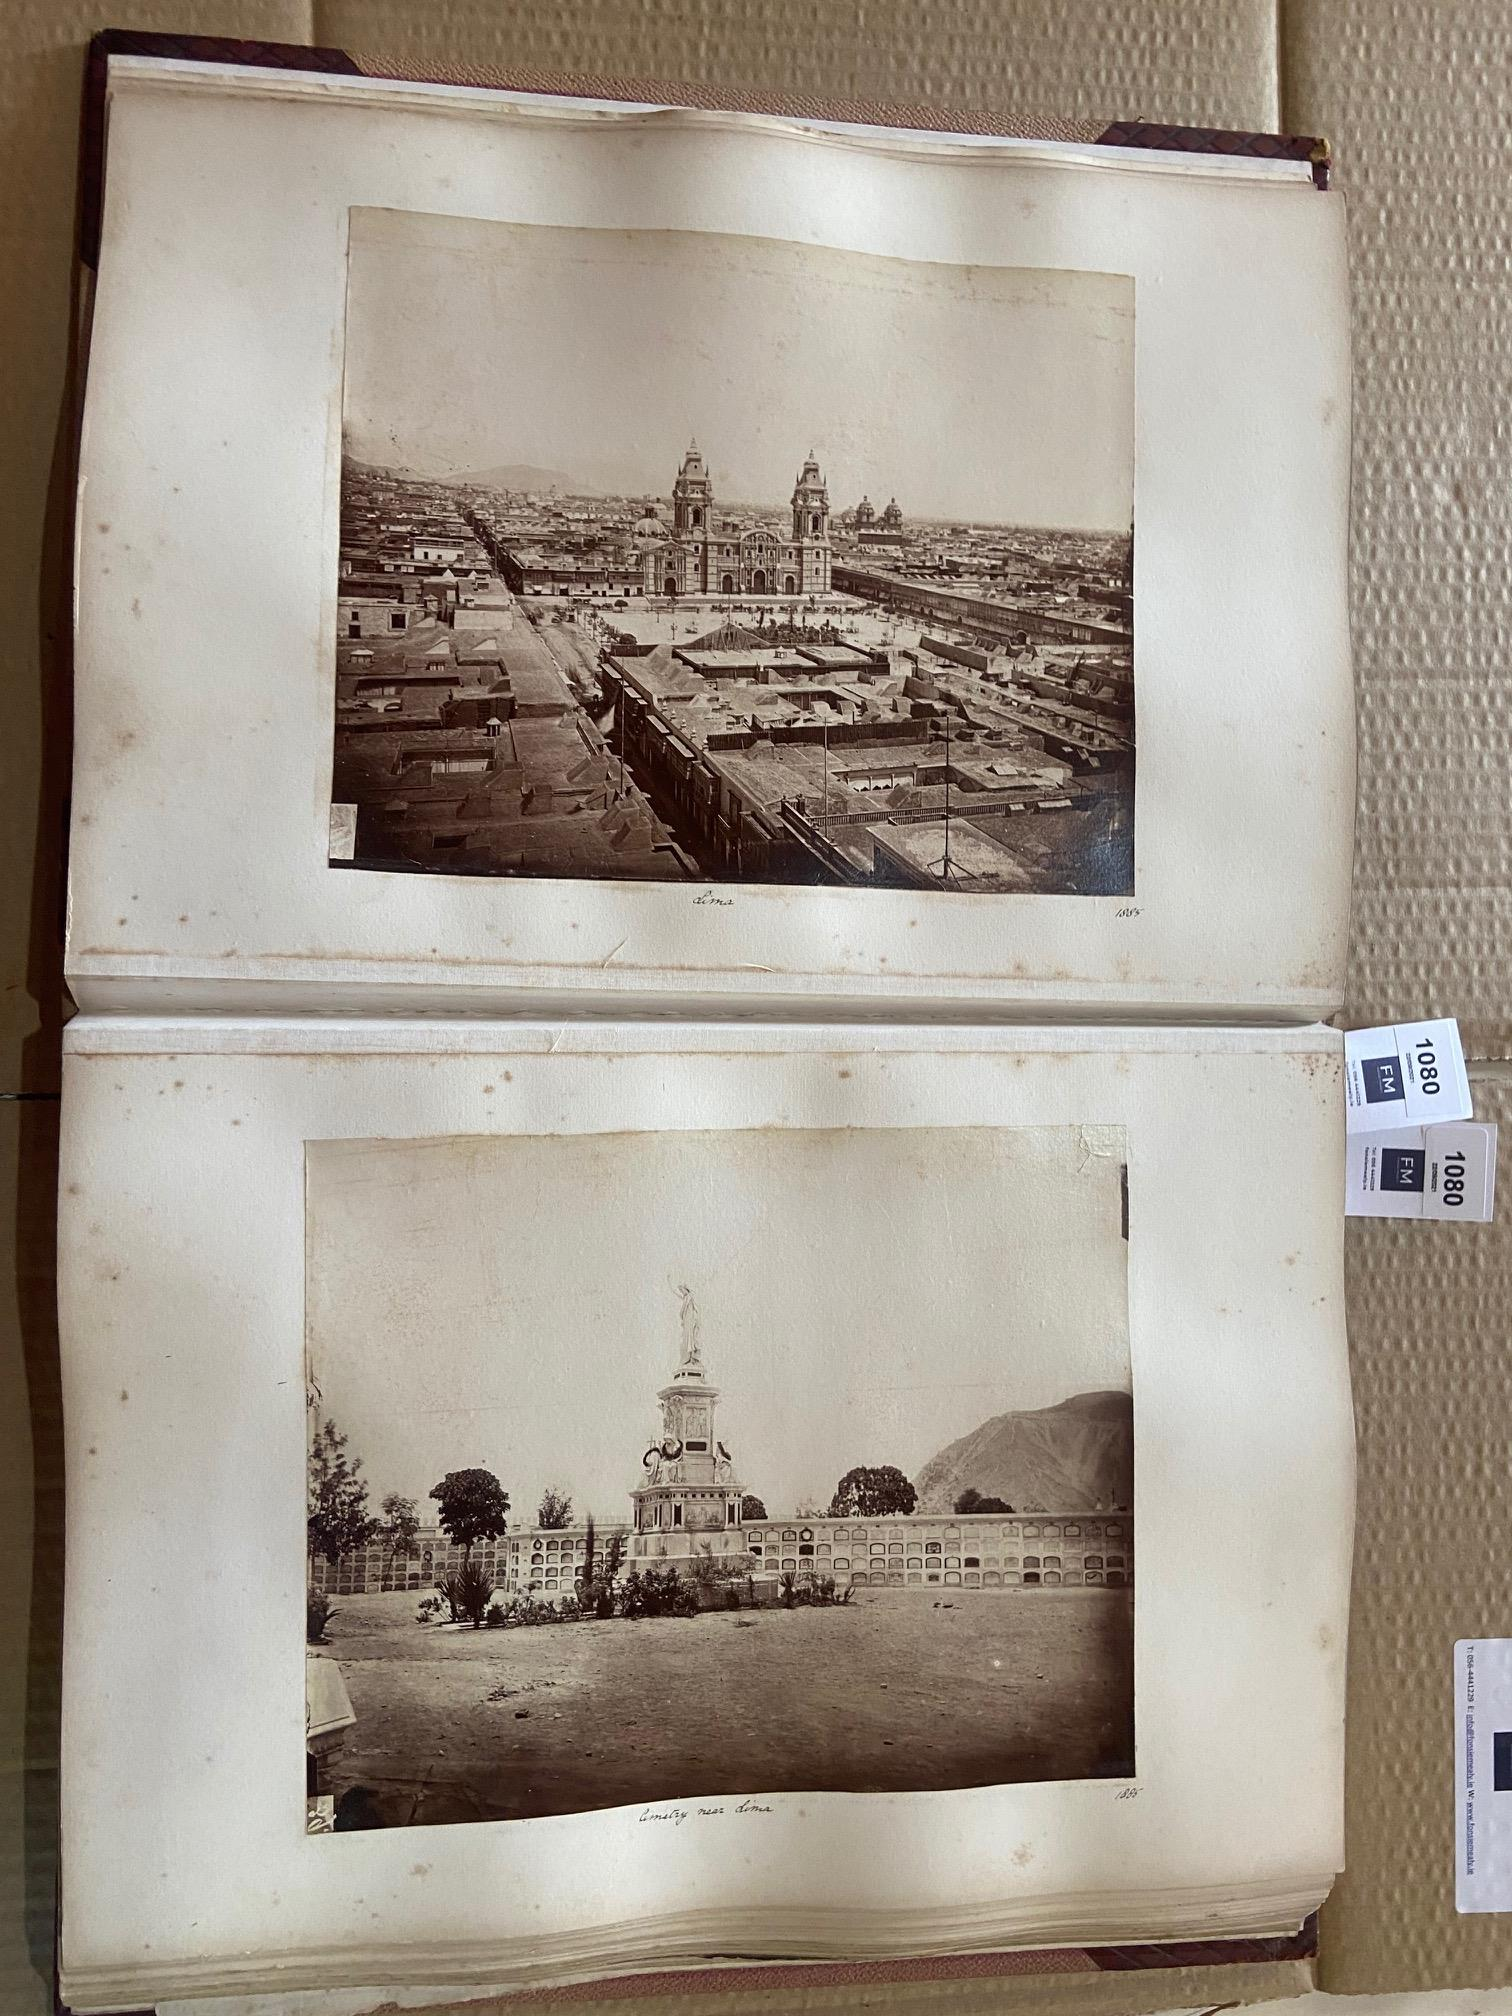 Photographs: Two large folio Albums of Photographs, each c. 1870 - 1890's. One Album contains - Image 20 of 31